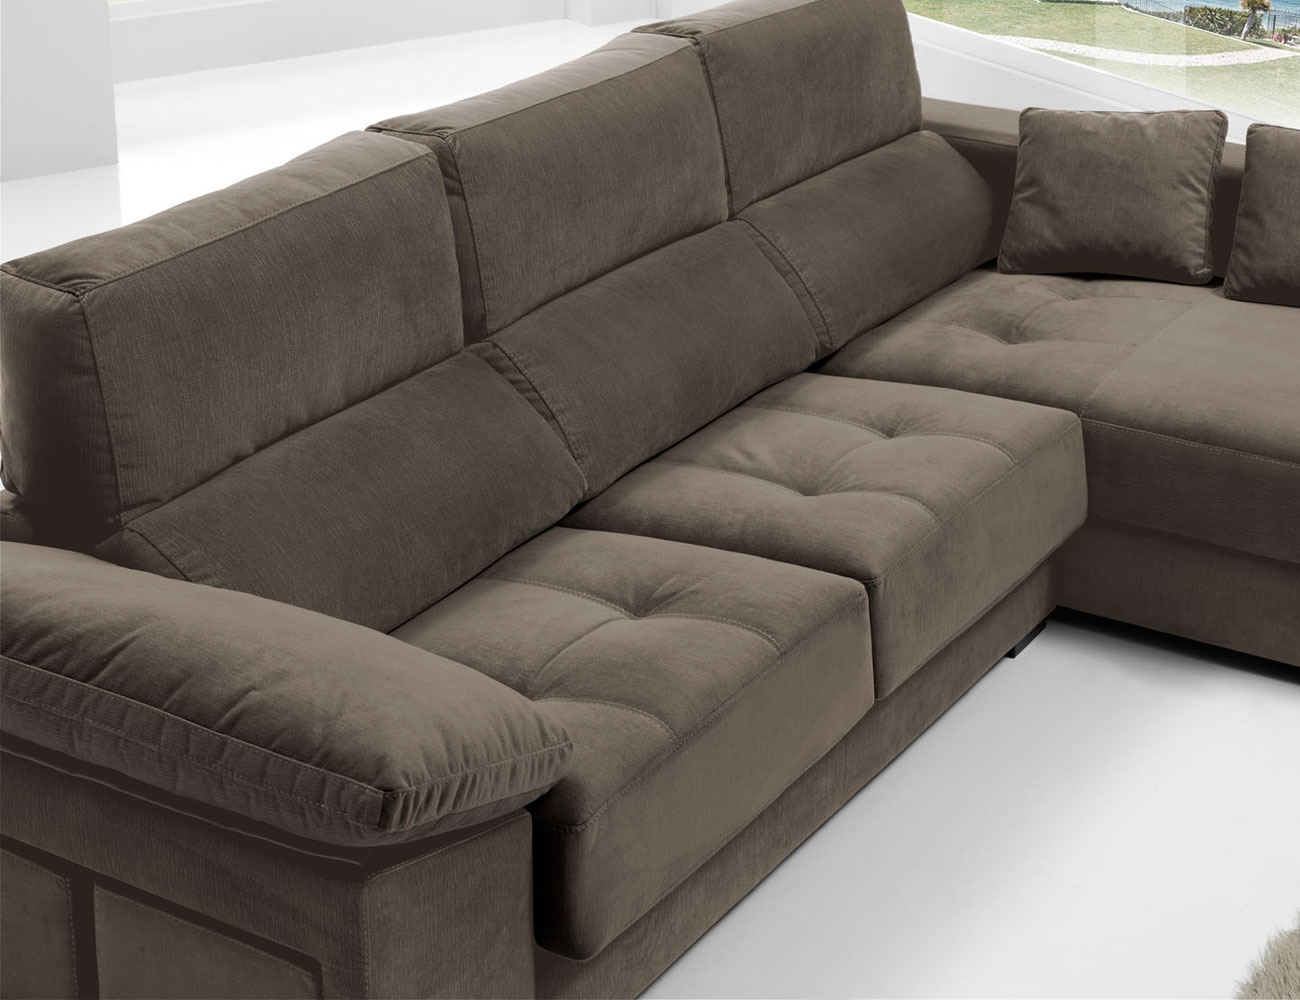 Sofa chaiselongue anti manchas bering pouf 261